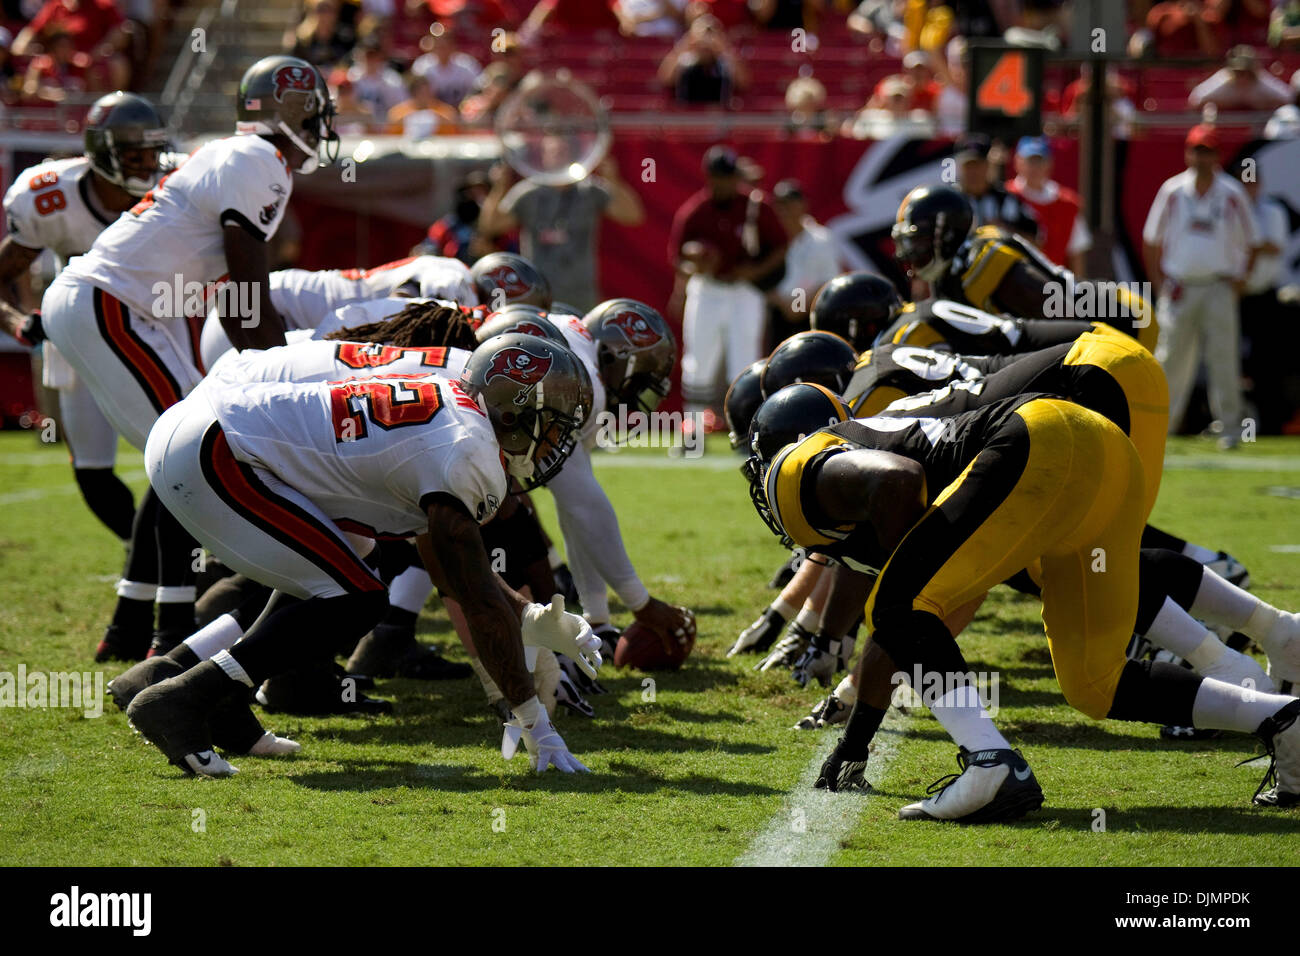 Sep. 26, 2010 - Tampa, Florida, United States of America - Tampa Bay Buccaneers host the Pittsburgh Steelers at Stock Photo